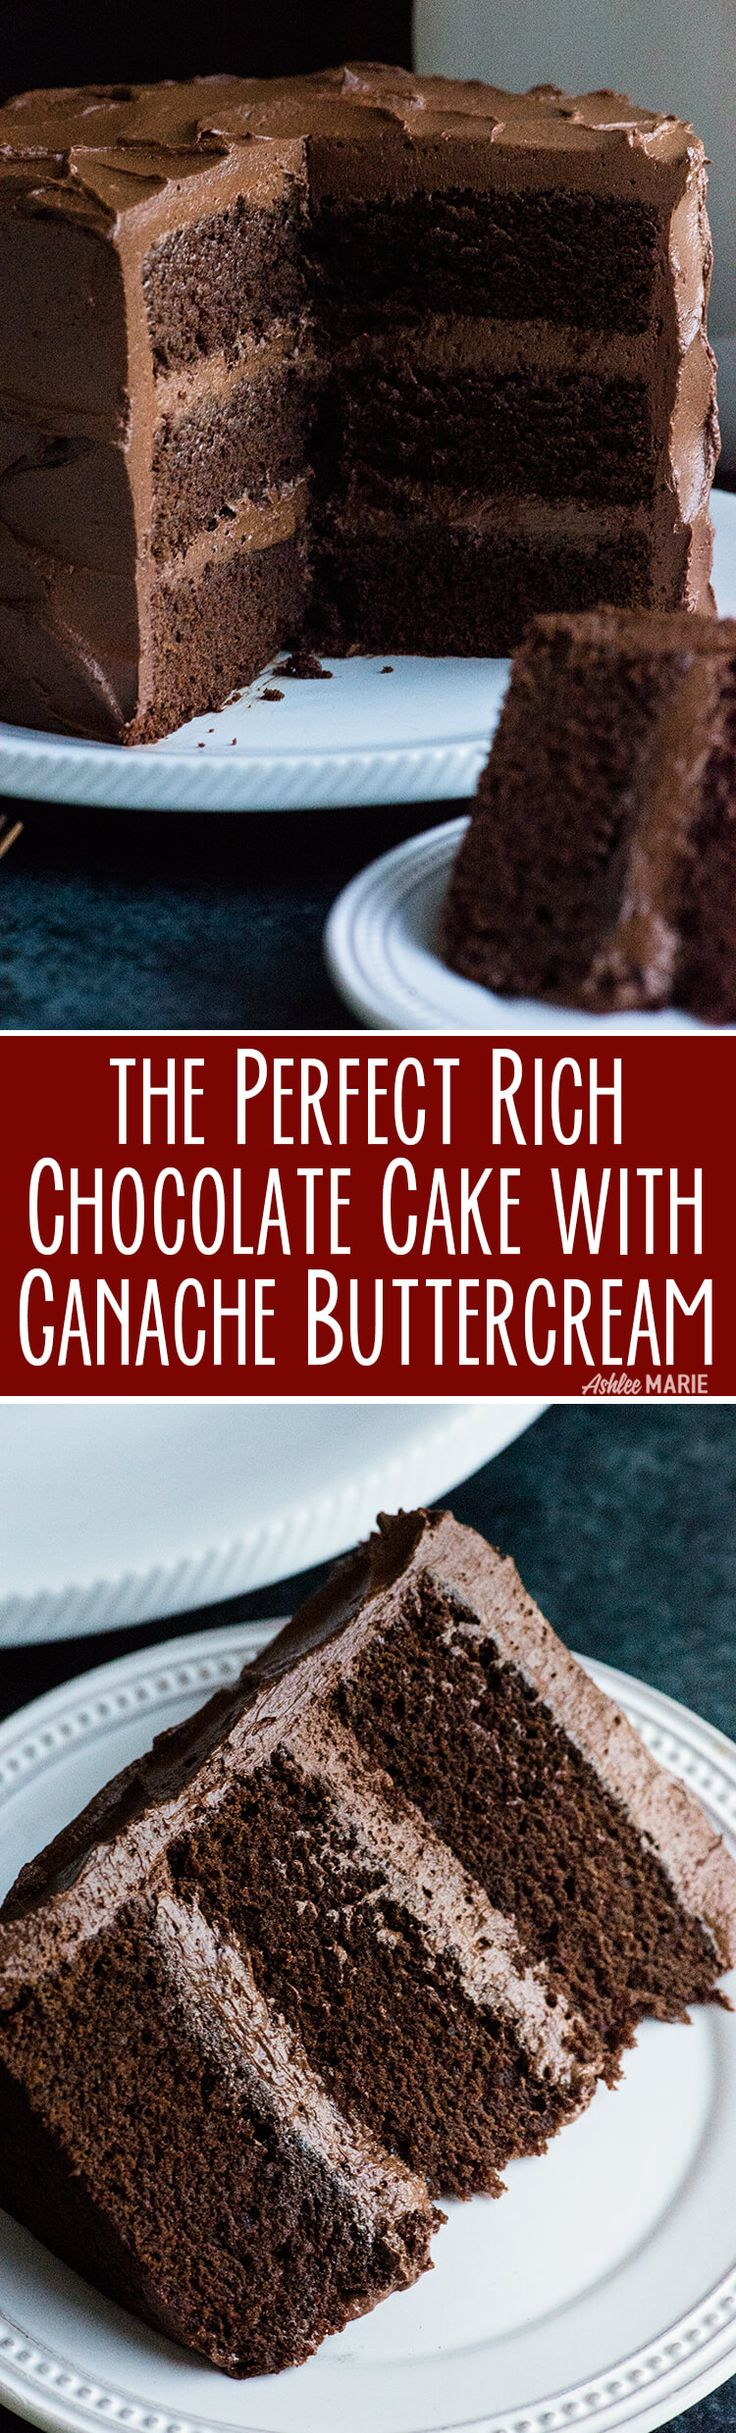 A rich and decadent chocolate cake recipe with video tutorial. This cake tastes amazing AND is dense enough for carving and building 3D cakes.